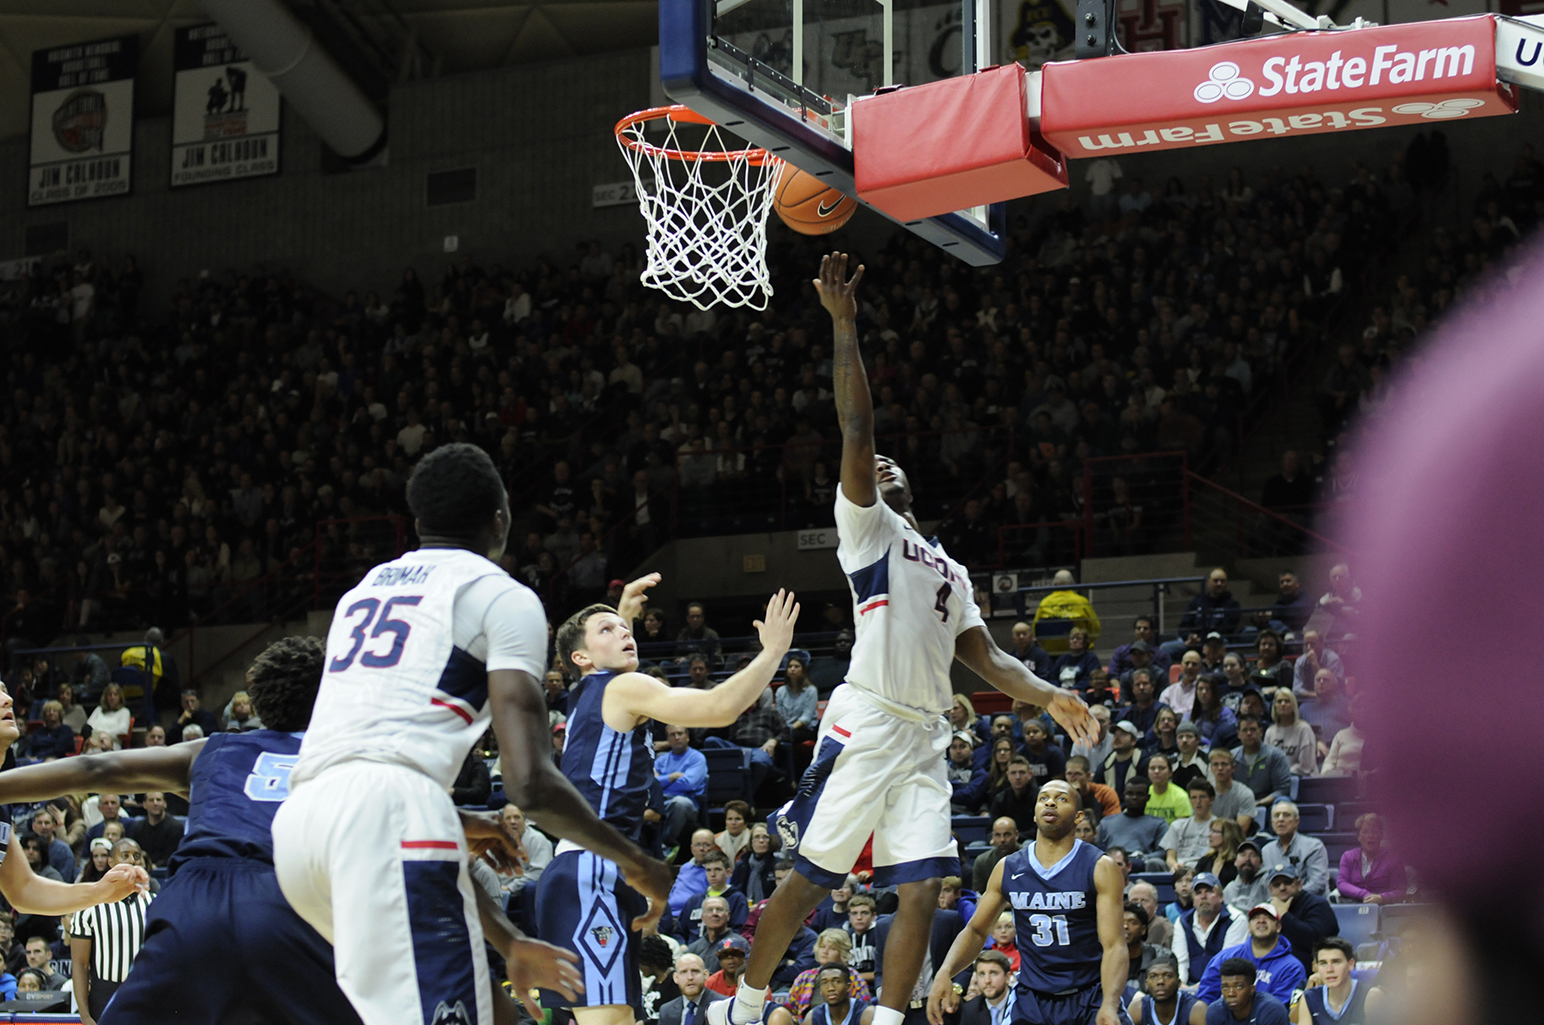 UConn guard Sterling Gibbs goes up for a layup during the Huskies' game against Maine at Gampel Pavilion in Storrs, Connecticut on Friday, Nov. 13, 2015. (Bailey Wright/The Daily Campus)